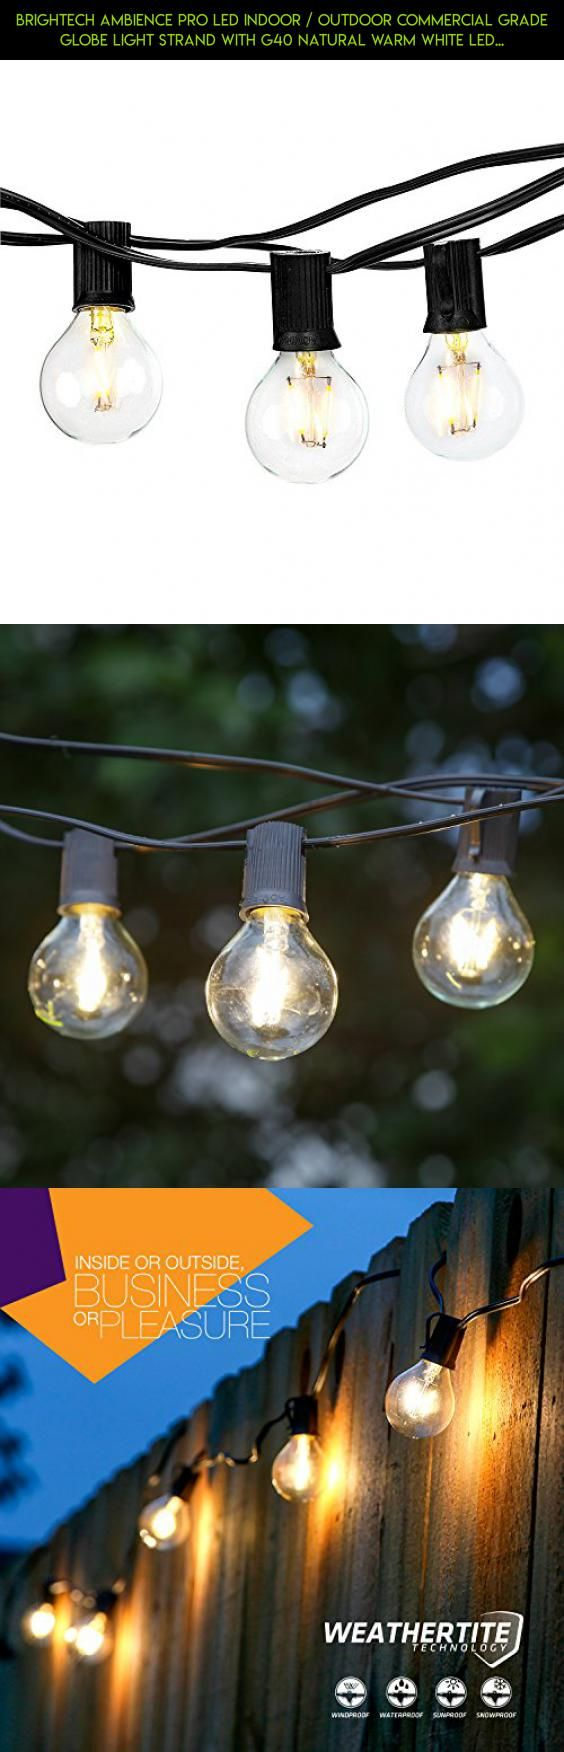 Brightech Ambience PRO LED Indoor / Outdoor Commercial Grade Globe Light Strand with G40 Natural Warm White LED Bulbs - 1 Watt LED Bulbs Included, 26 Foot Strand - Classic Black #decor #gadgets #products #fpv #lights #outdoor #shopping #technology #tech #drone #racing #led #camera #parts #plans #kit